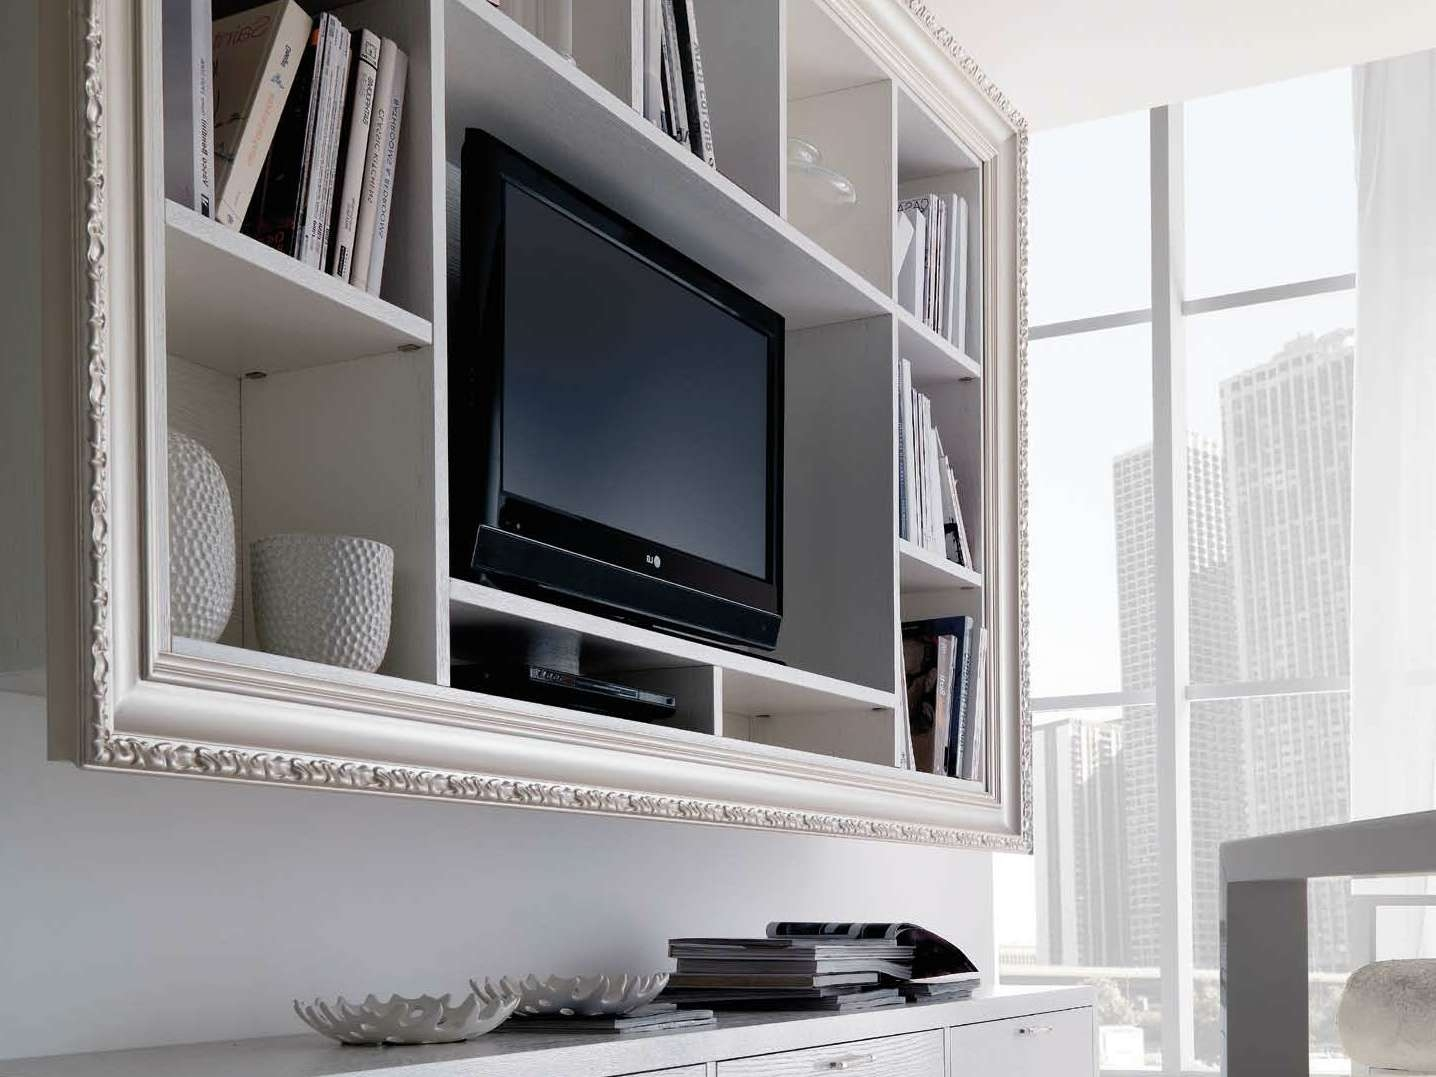 Decoration : Wall Mounted Tv Stands With Shelves 3 Wall Mount Tv Throughout Full Wall Tv Cabinets (View 13 of 20)